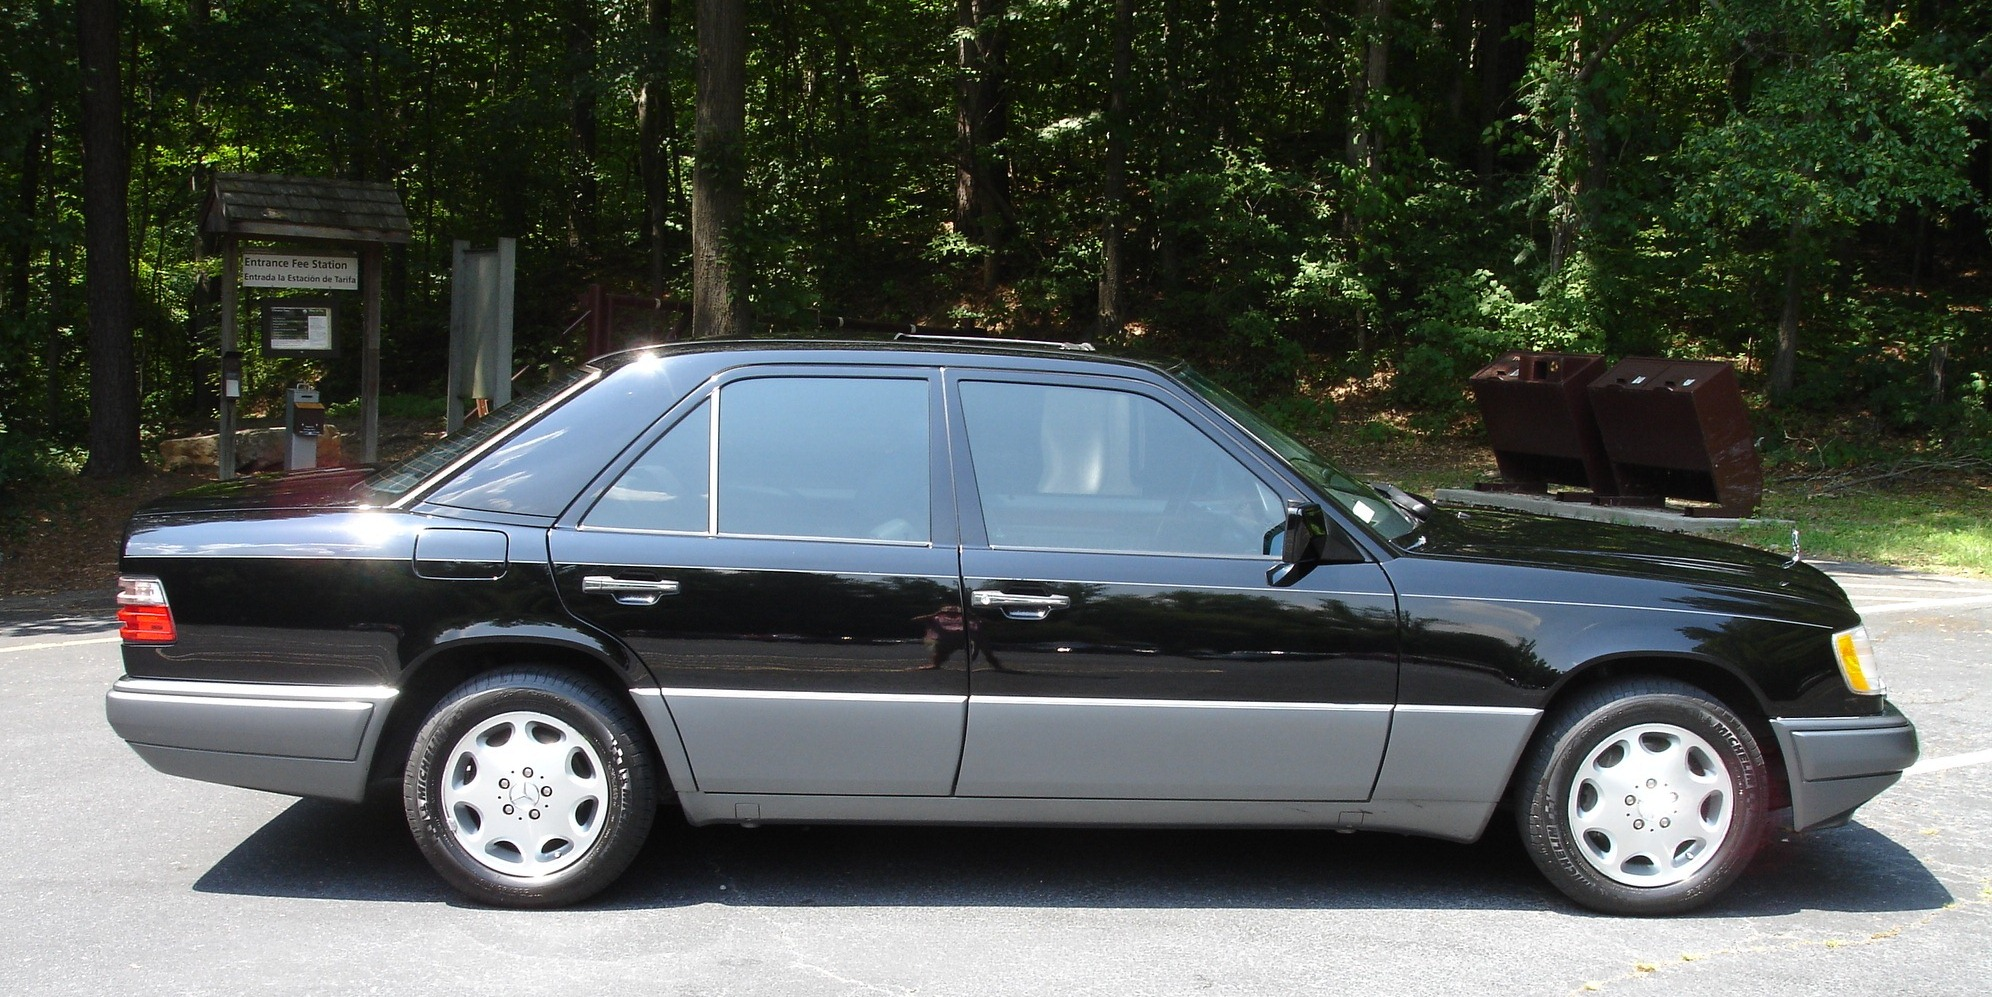 file 1995 mercedes benz w 124 e320 sedan jpg wikimedia